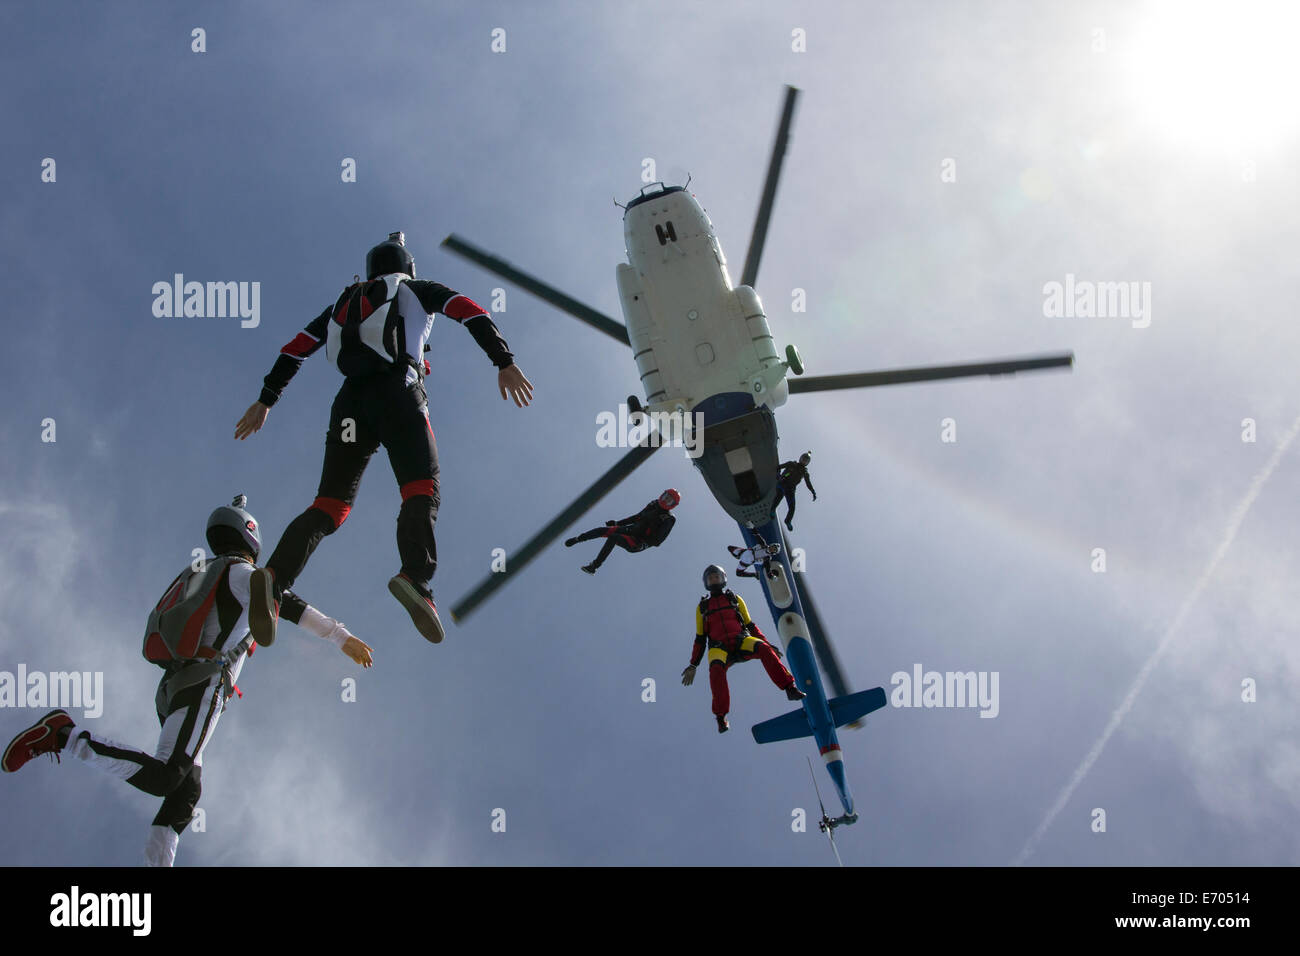 Low angle view of helicopter and six skydivers free falling, Siofok, Somogy, Hungary Stock Photo